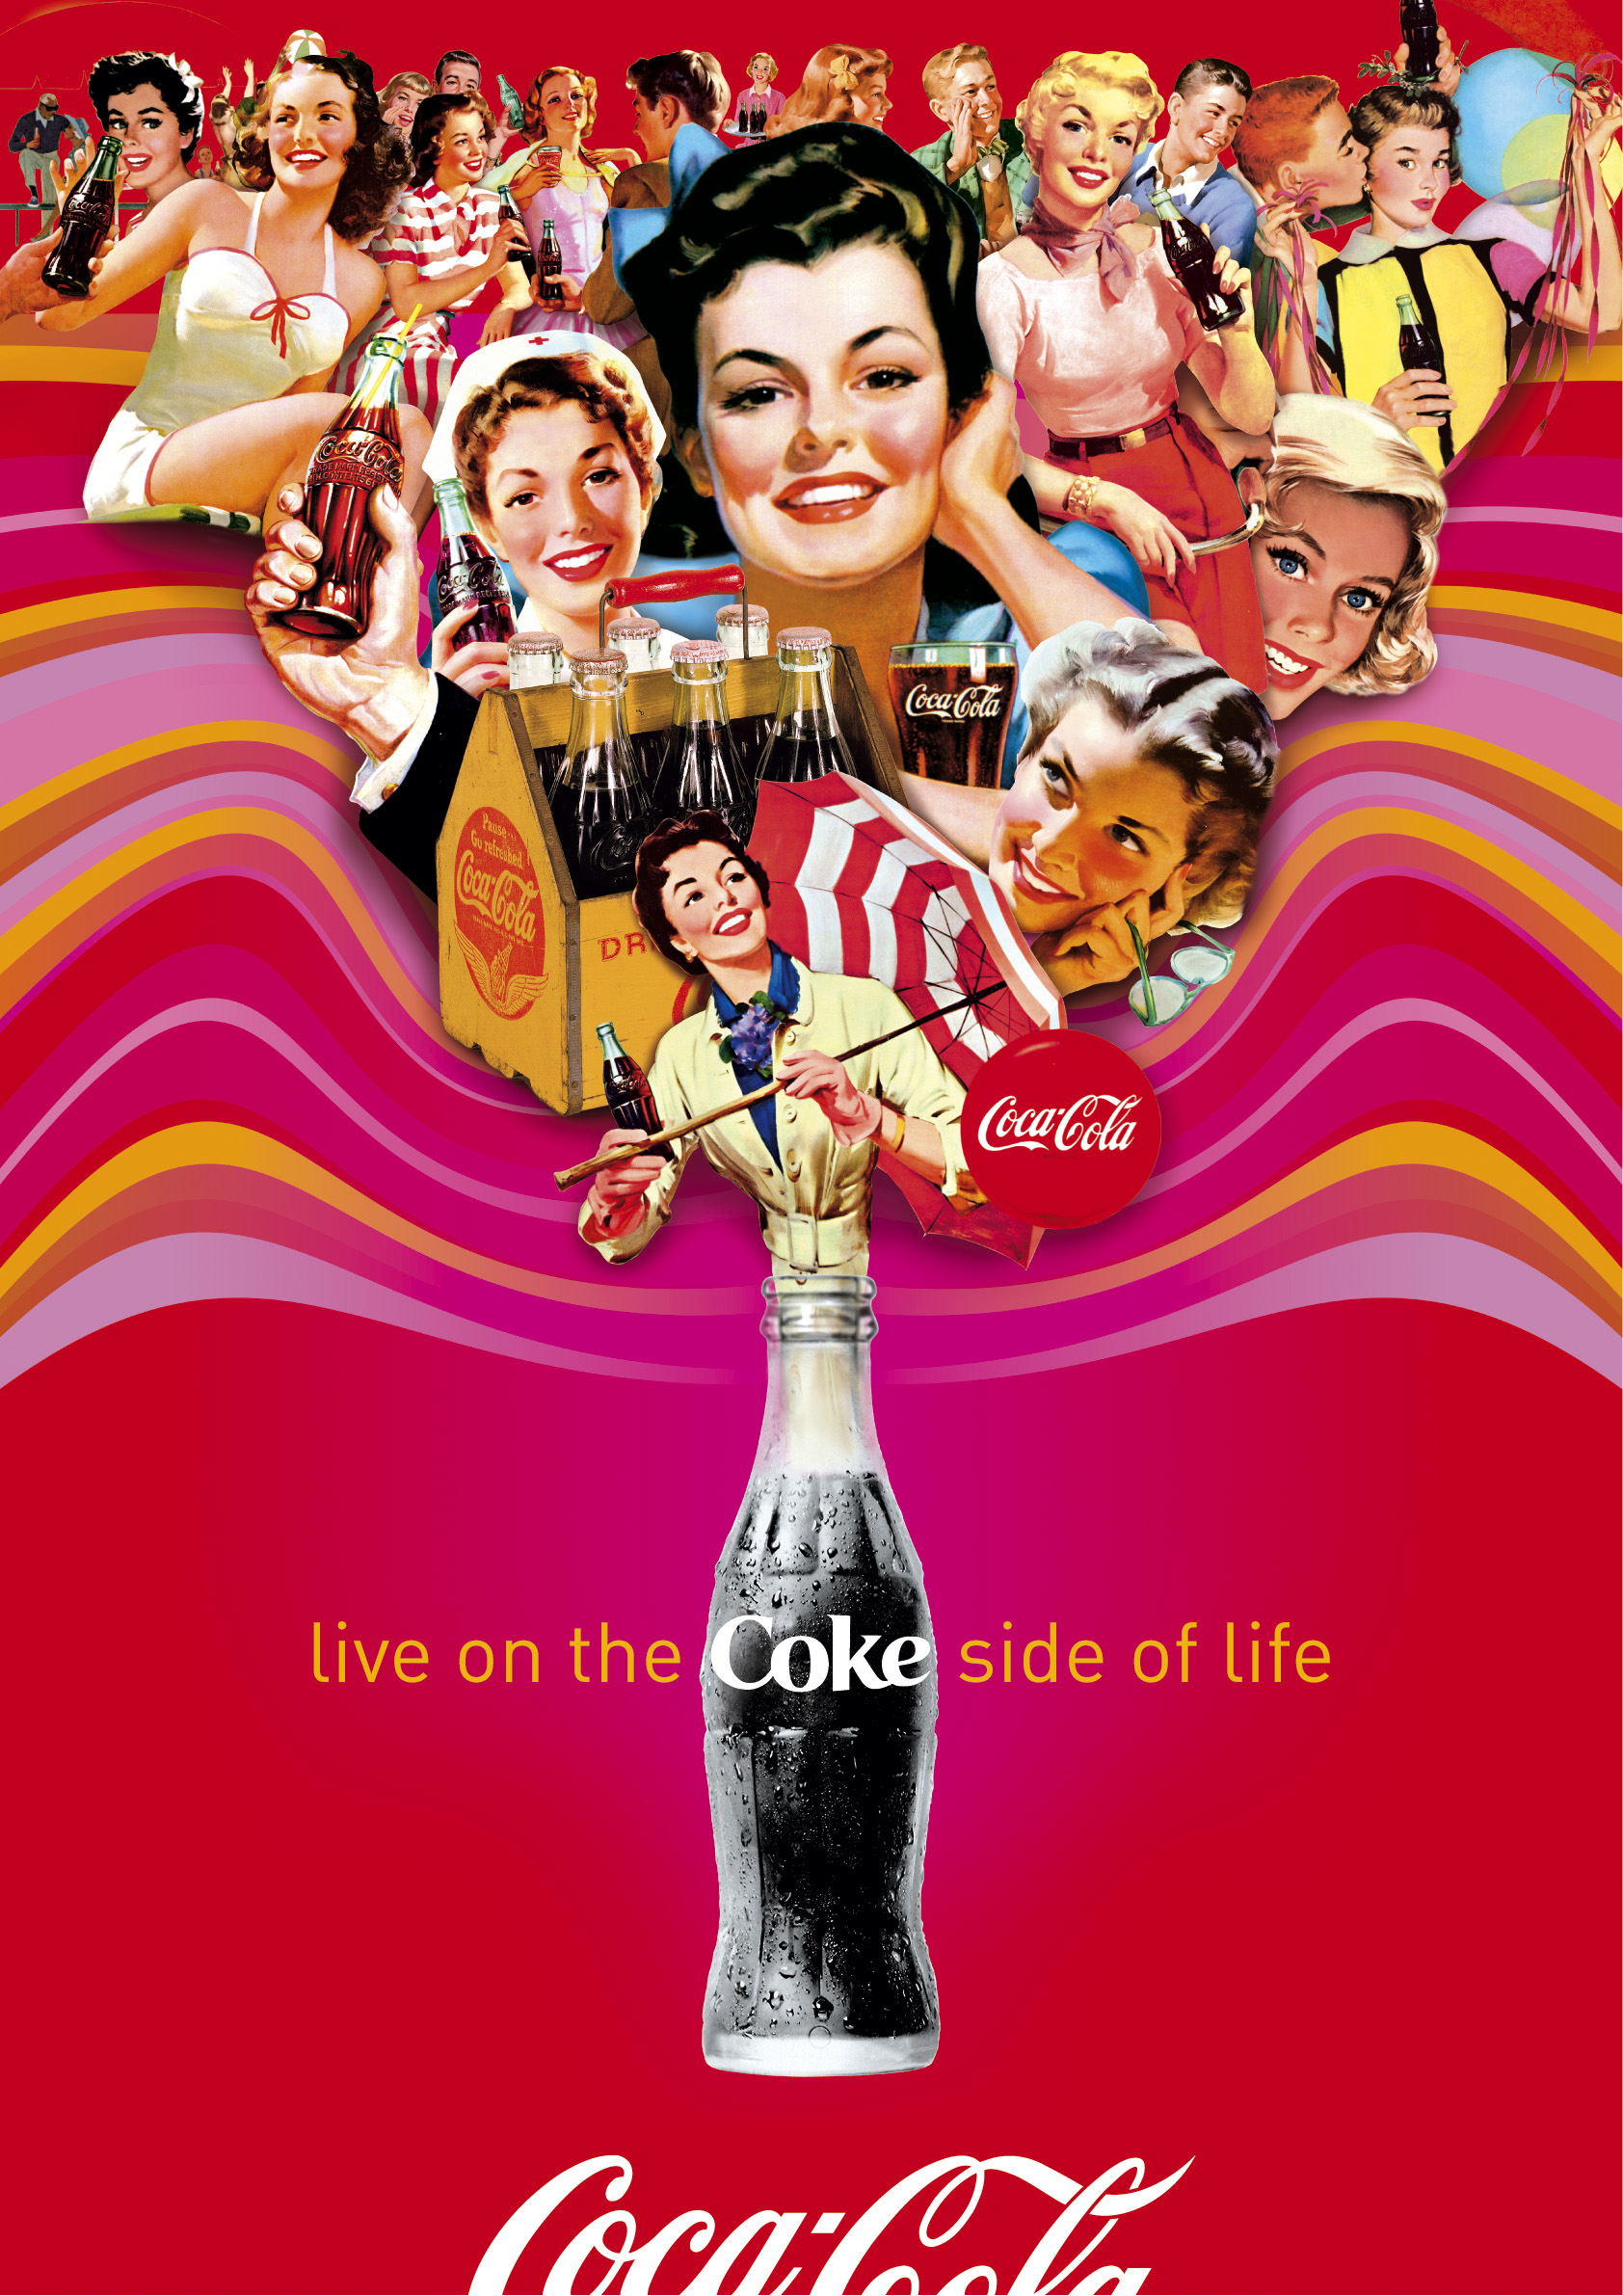 Coca cola ads images amp pictures becuo - And Last